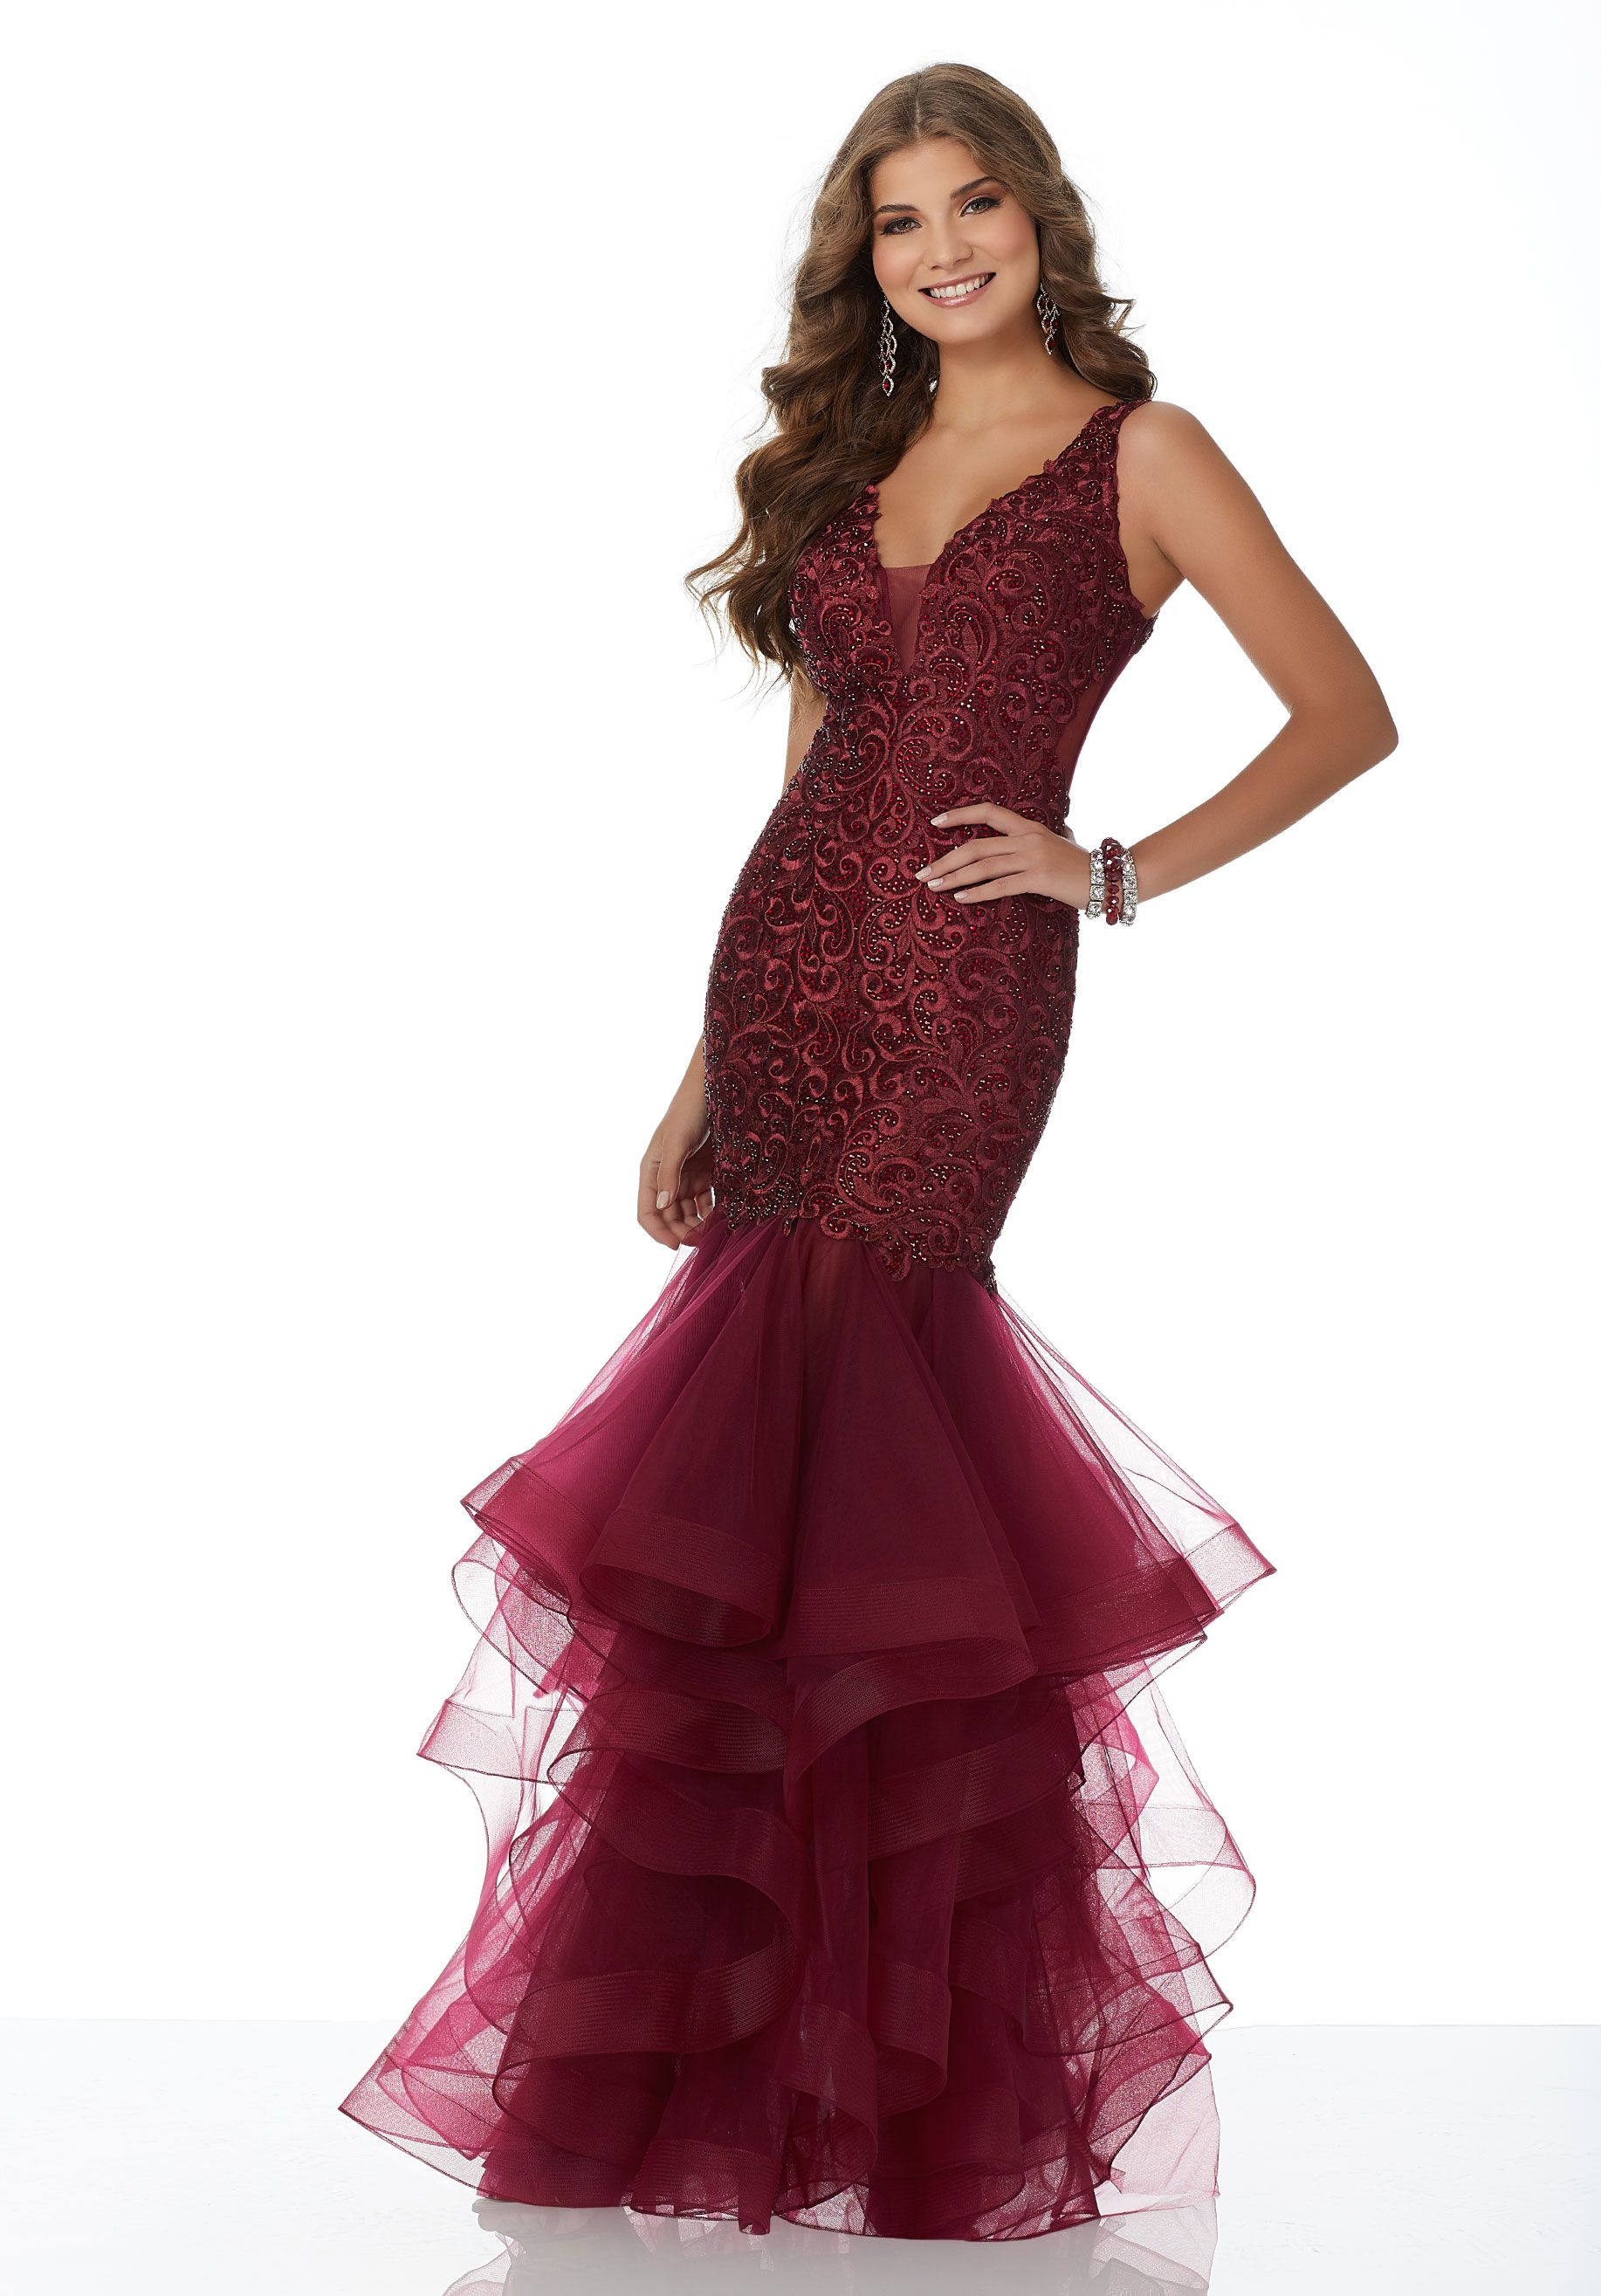 6dcaeb958a Form Fitting Mermaid Prom Gown Featuring a Fully Embroidered and Beaded  Bodice with Sheer Back. A Ruffled Tulle Skirt Trimmed in Horsehair  Completes the ...